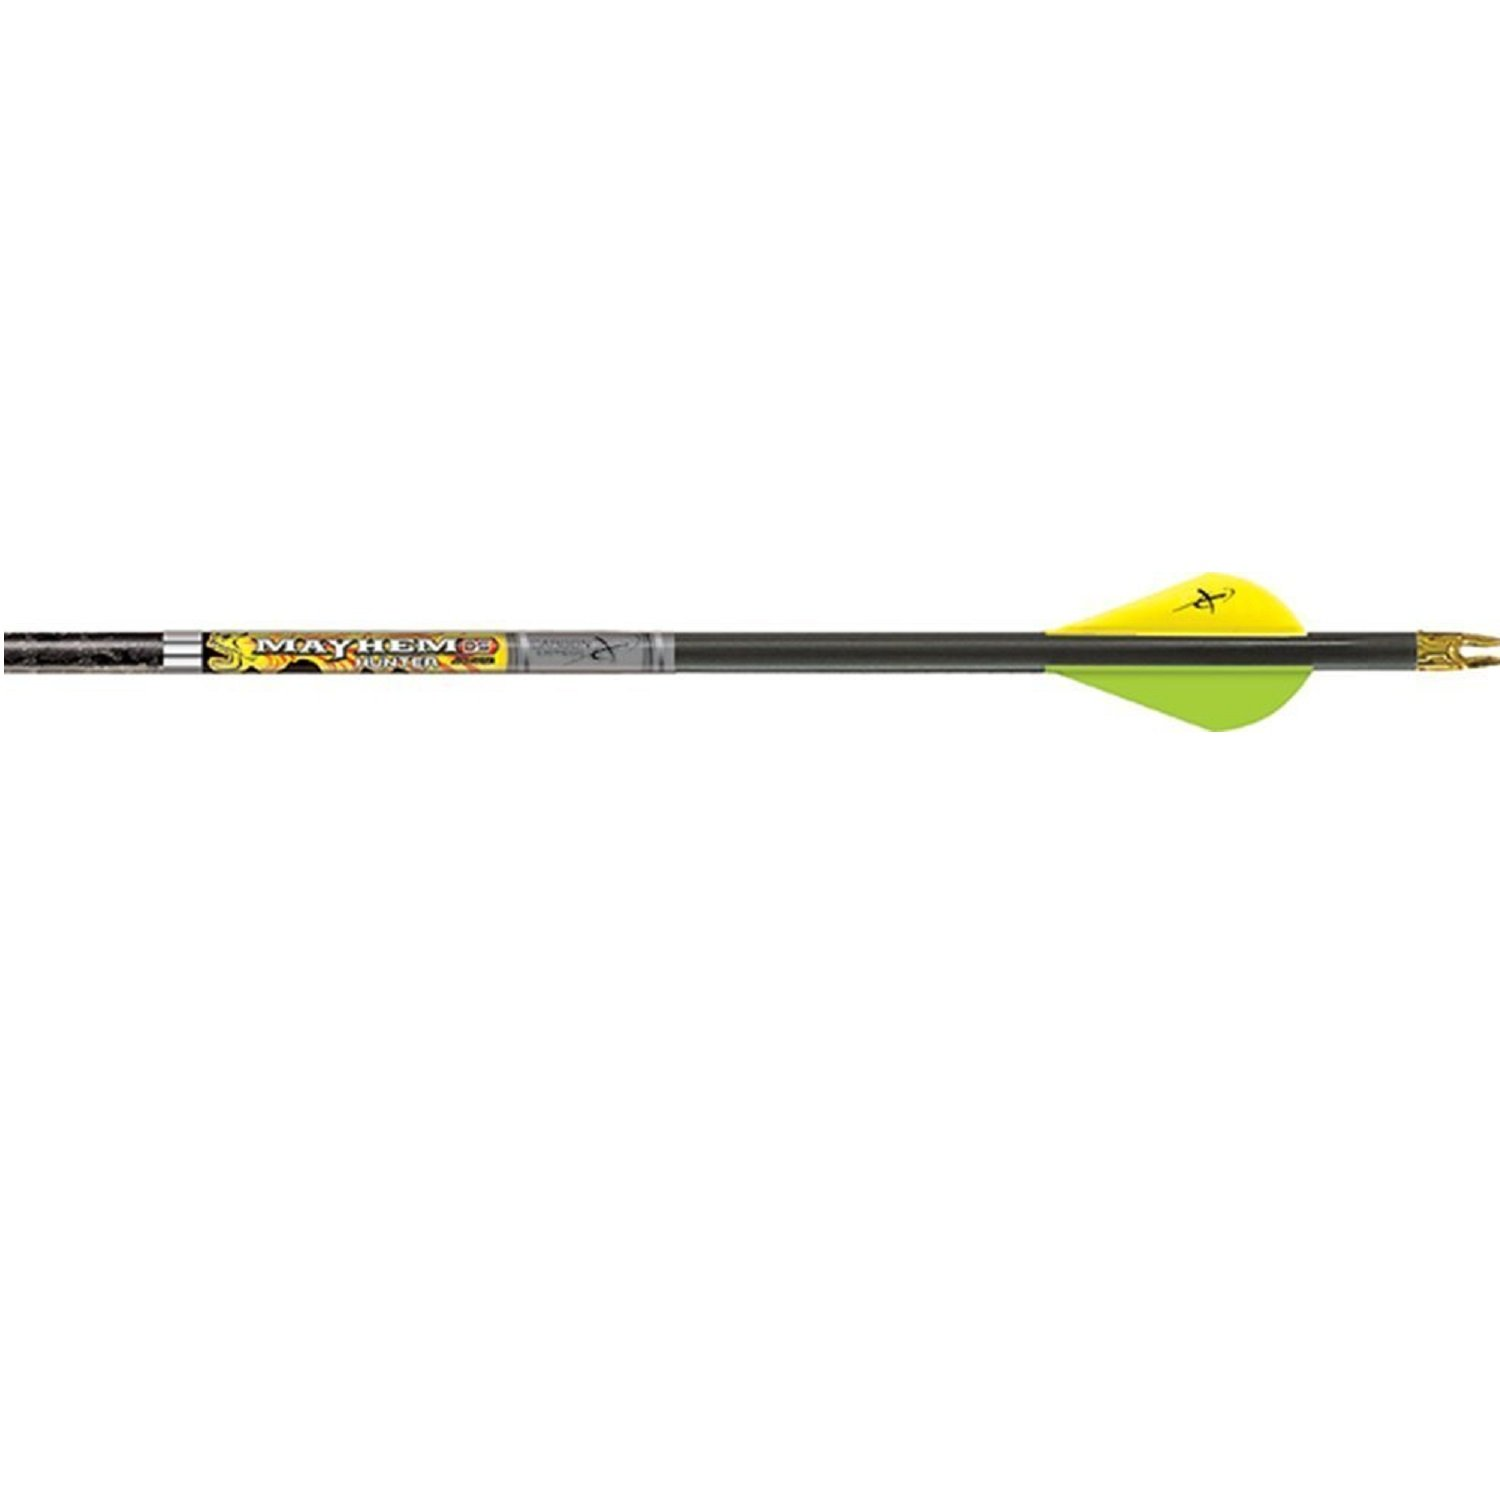 Carbon Express Mayhem Hunter Ds Mayhem Ds Hunter Fletched BuffTuff Carbon Arrows with Quadel Raptor Performance Vanes, Mossy Oak Obsession An